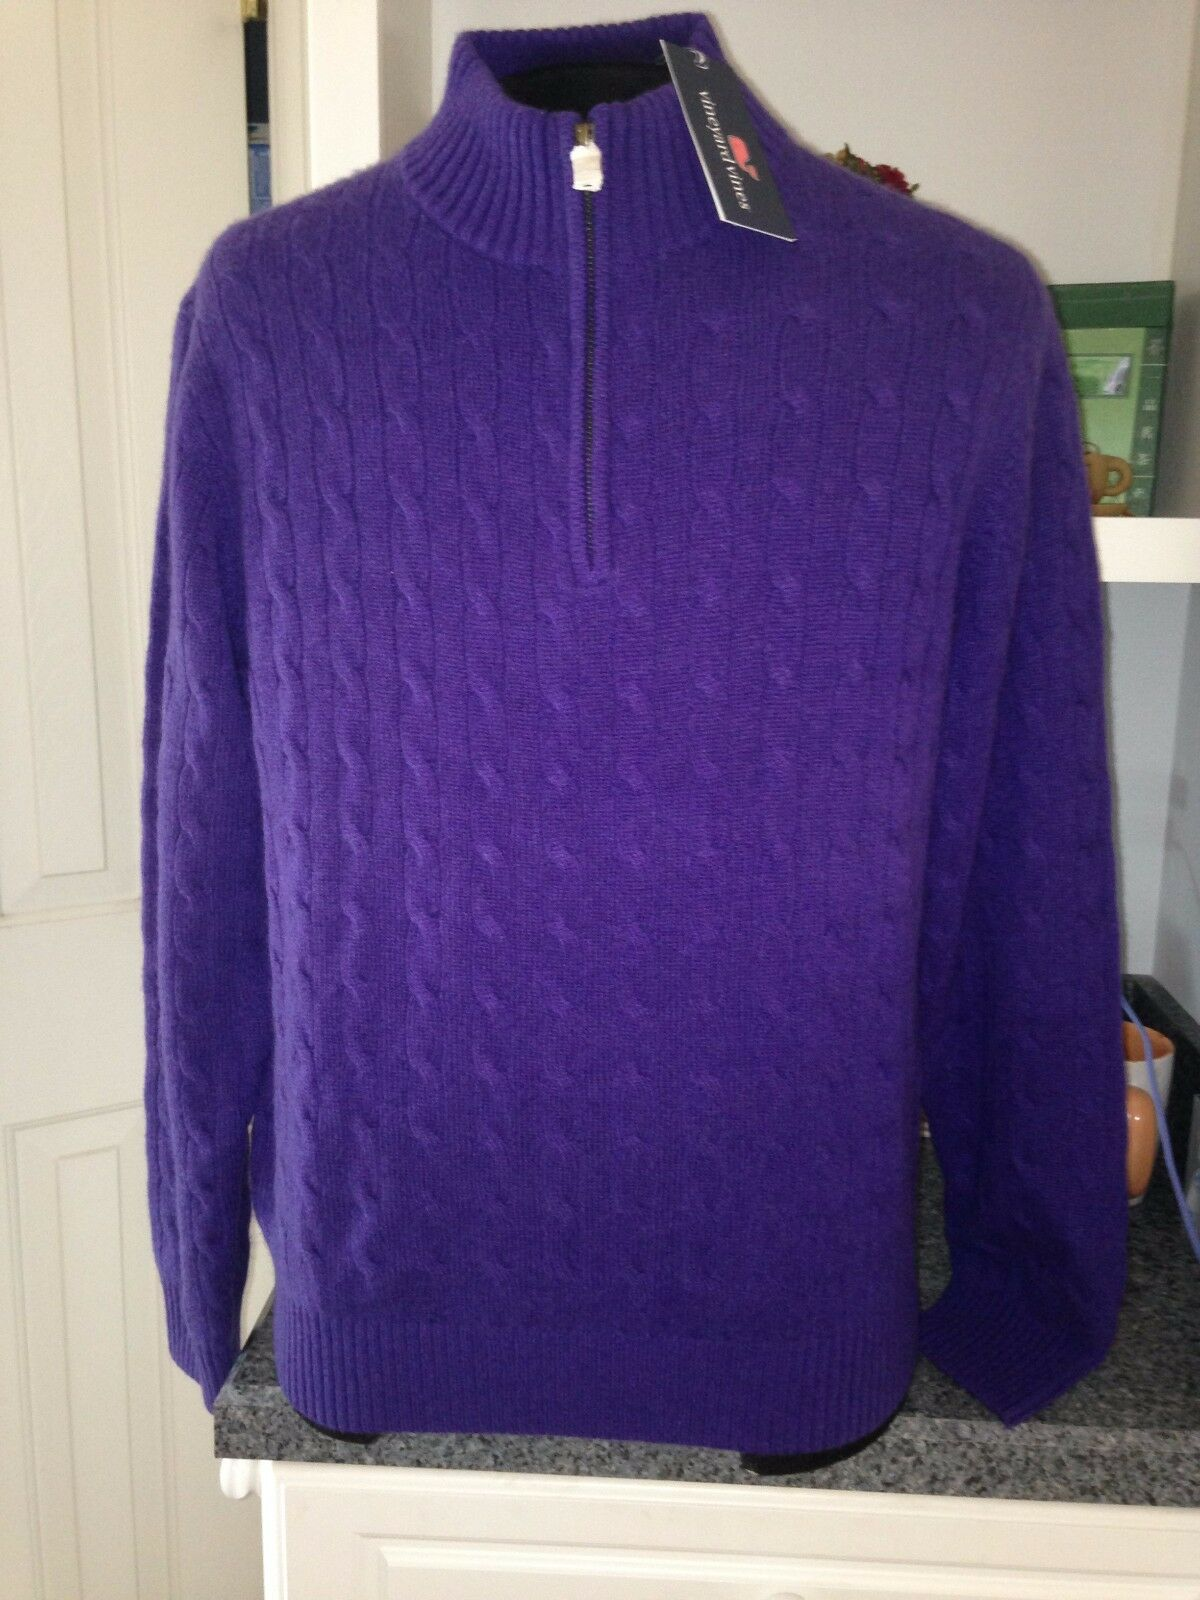 Vineyard Vines Purple Cashmere 1/4 Zip Cable Knit Fall Sweater M ...